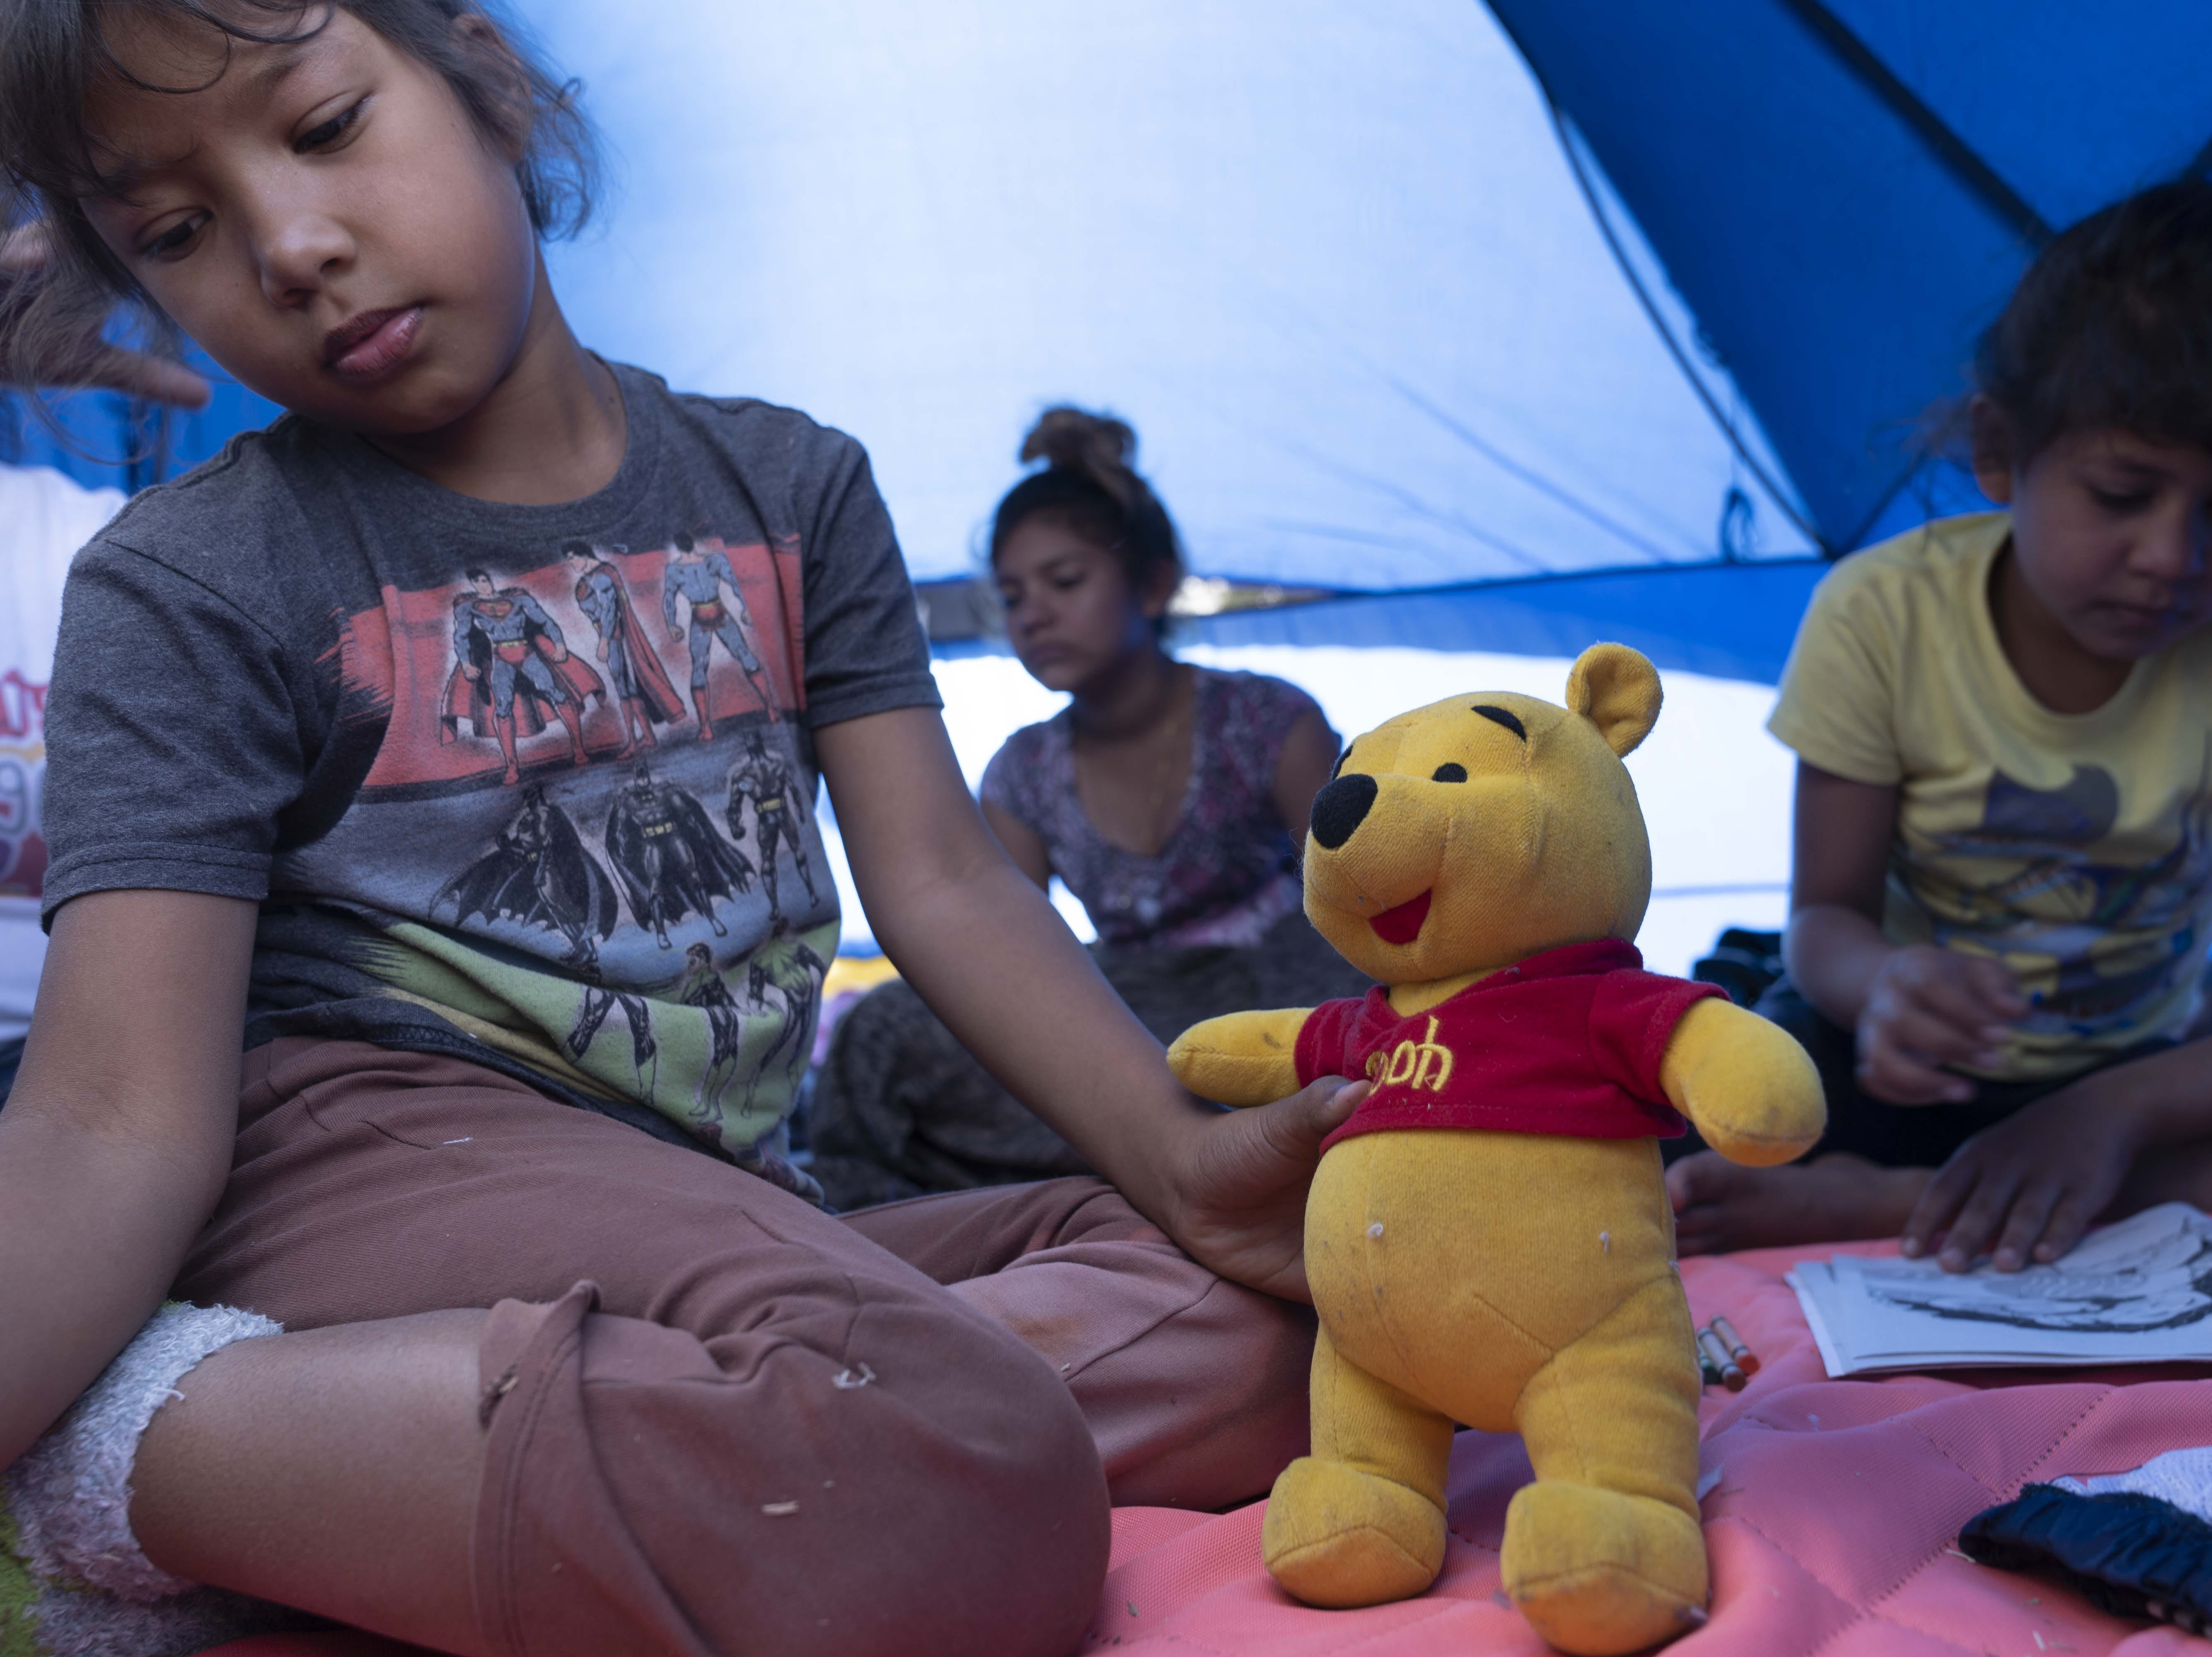 More than 2,500 mostly Central American migrants were staying at the Unidad Deportiva Benito Juarez, a makeshift shelter, in Tijuana, Mexico, on Nov. 18, 2018. Migrants set up camp around the baseball stadium, propping up tents using whatever materials they have available.